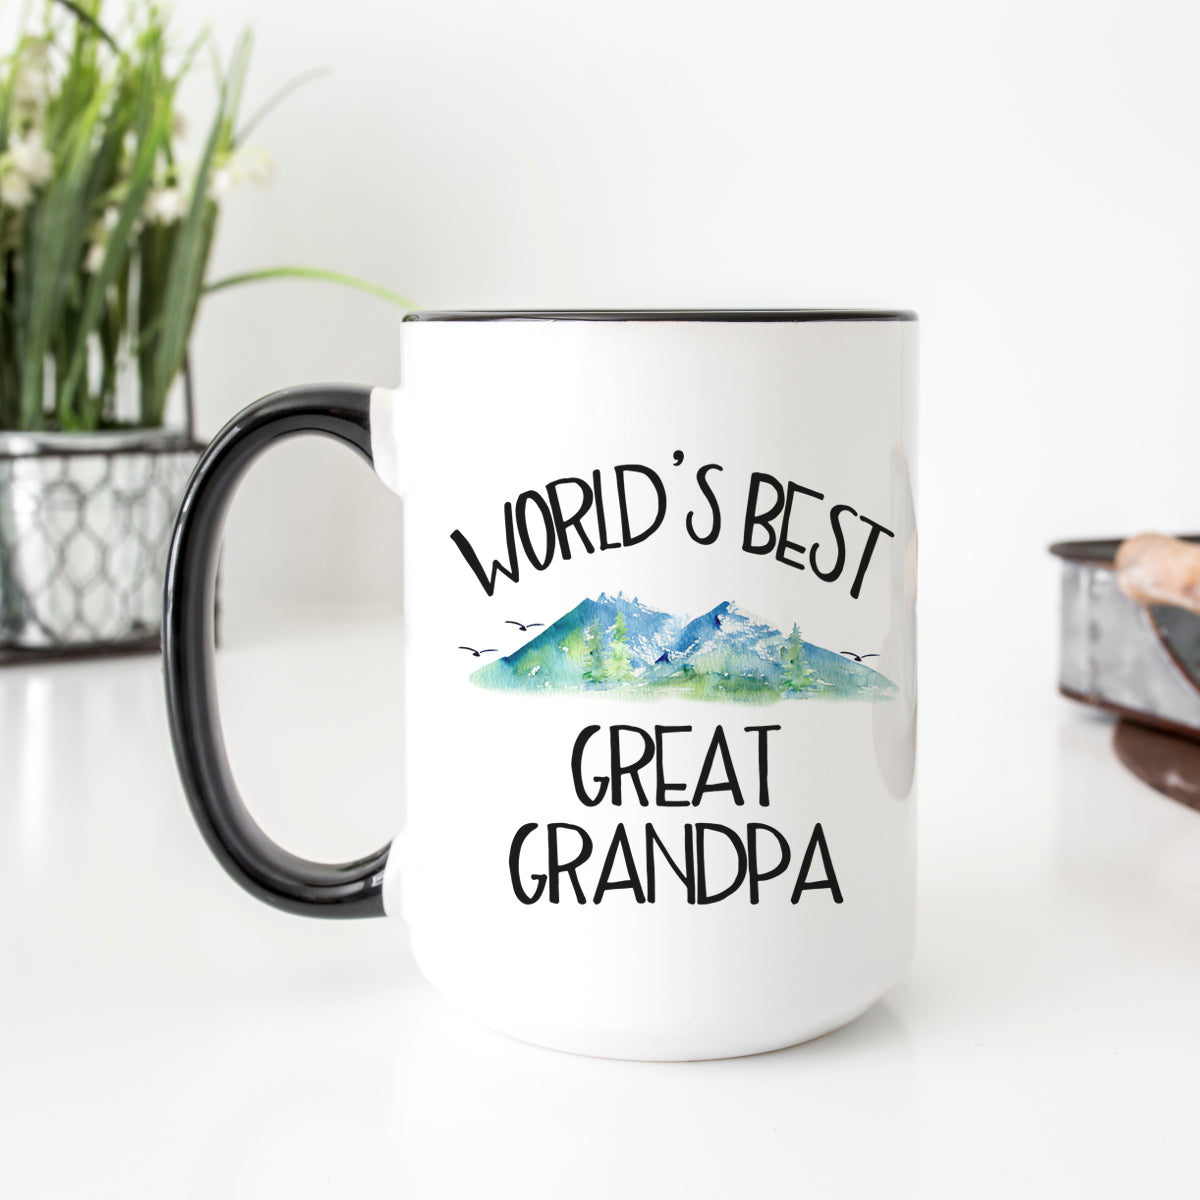 World's Best Great Grandpa Mug